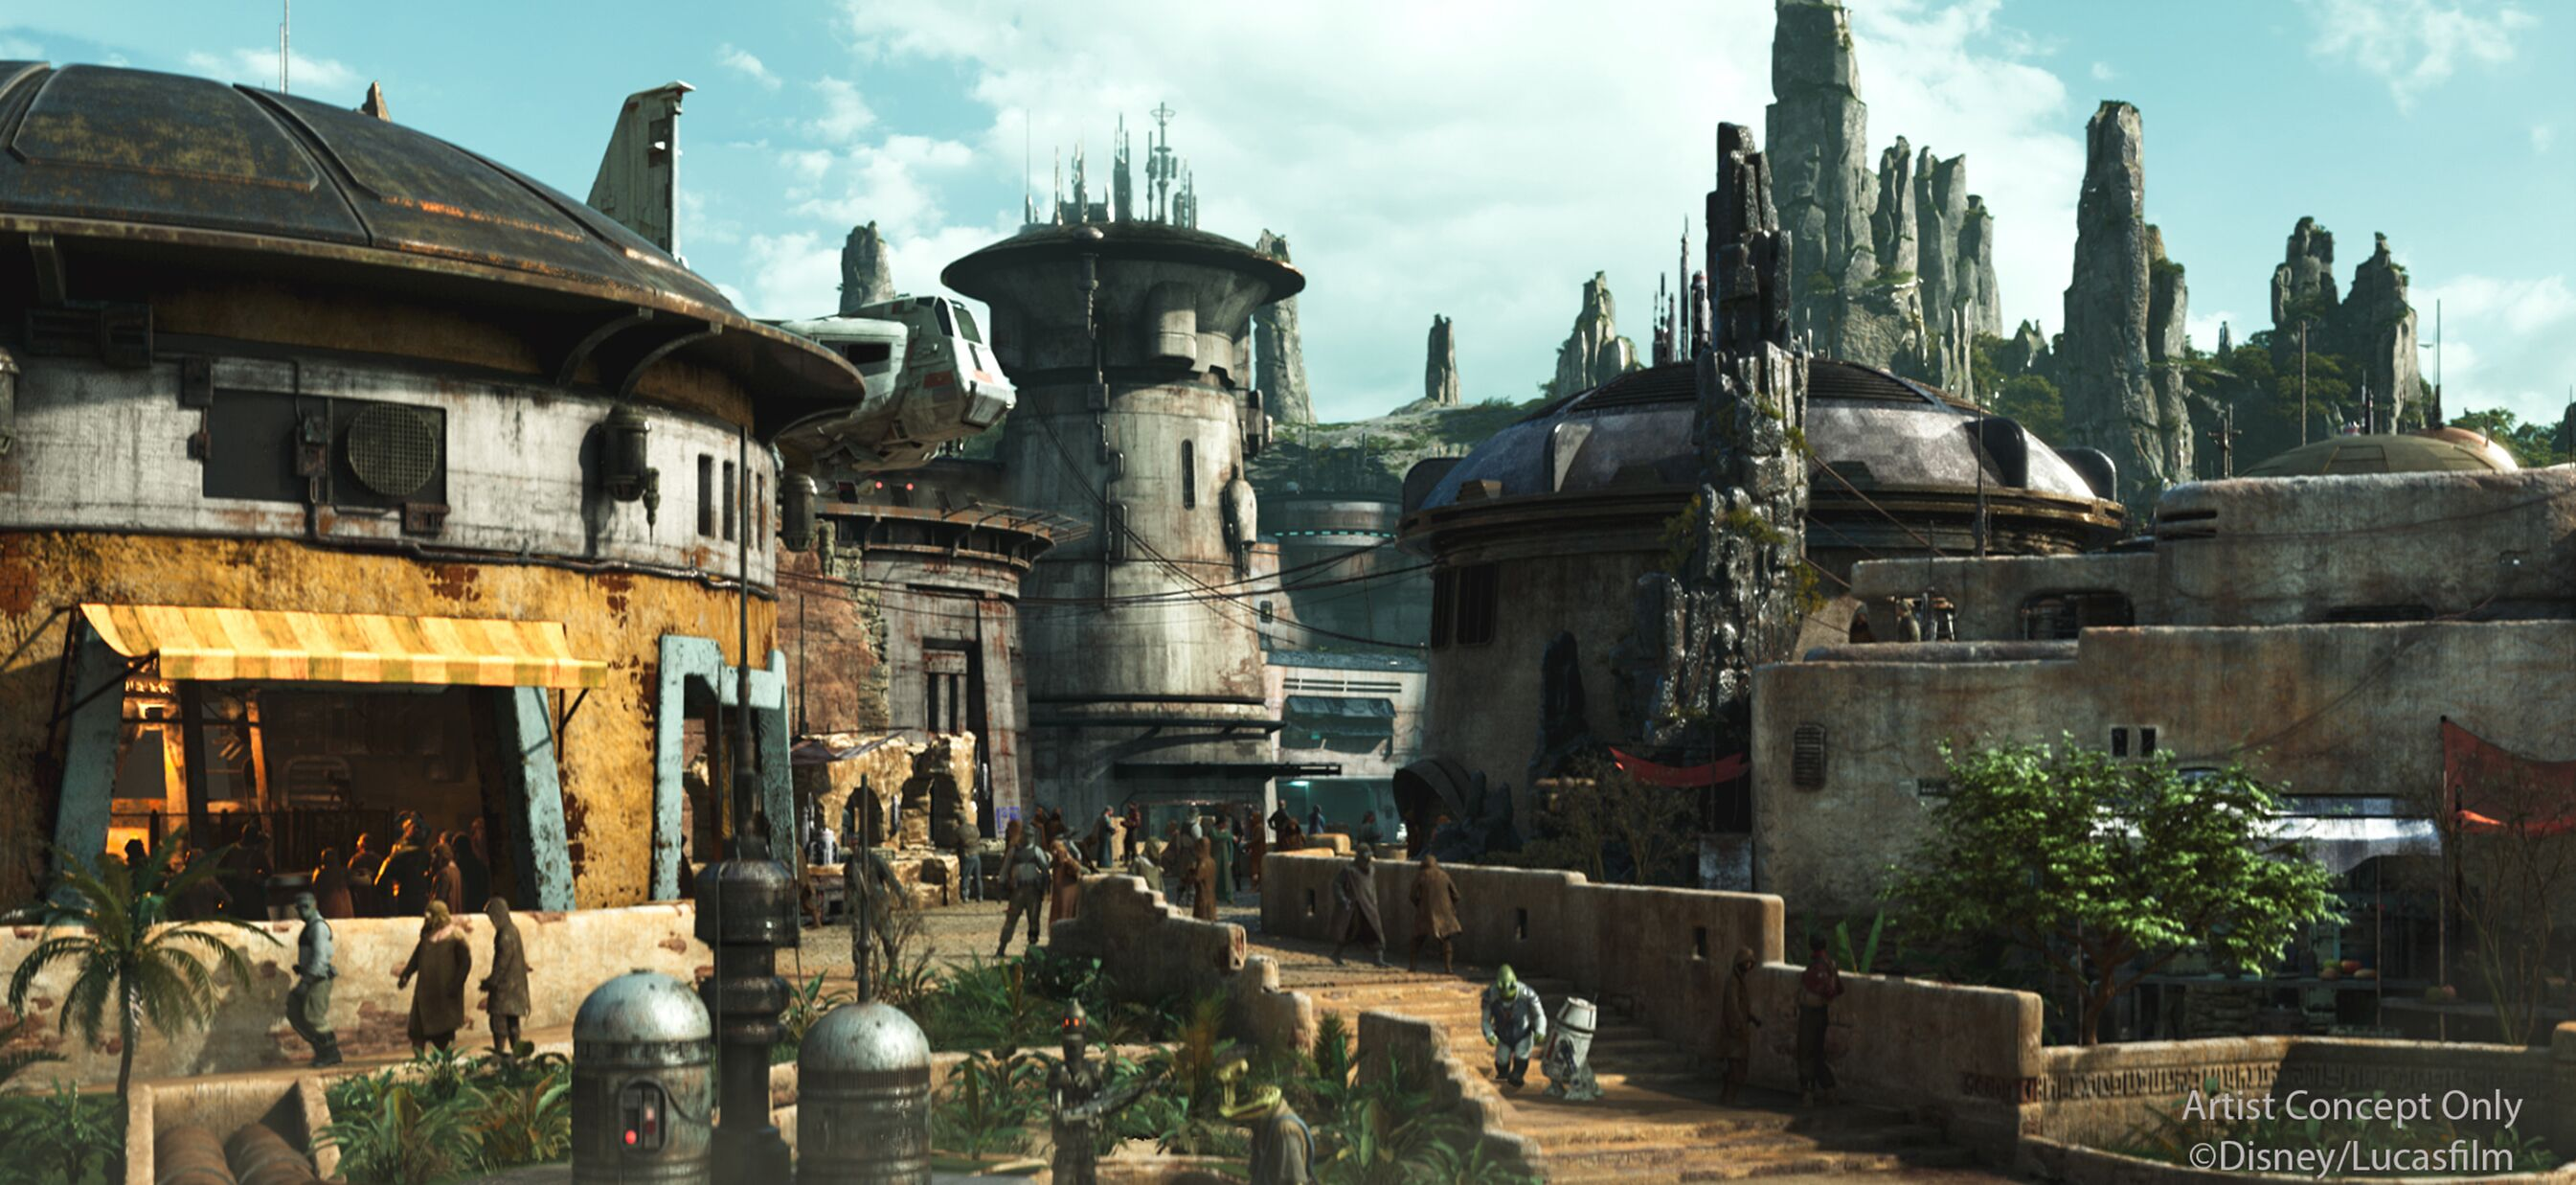 12 of the most exciting details about Star Wars: Galaxy's Edge